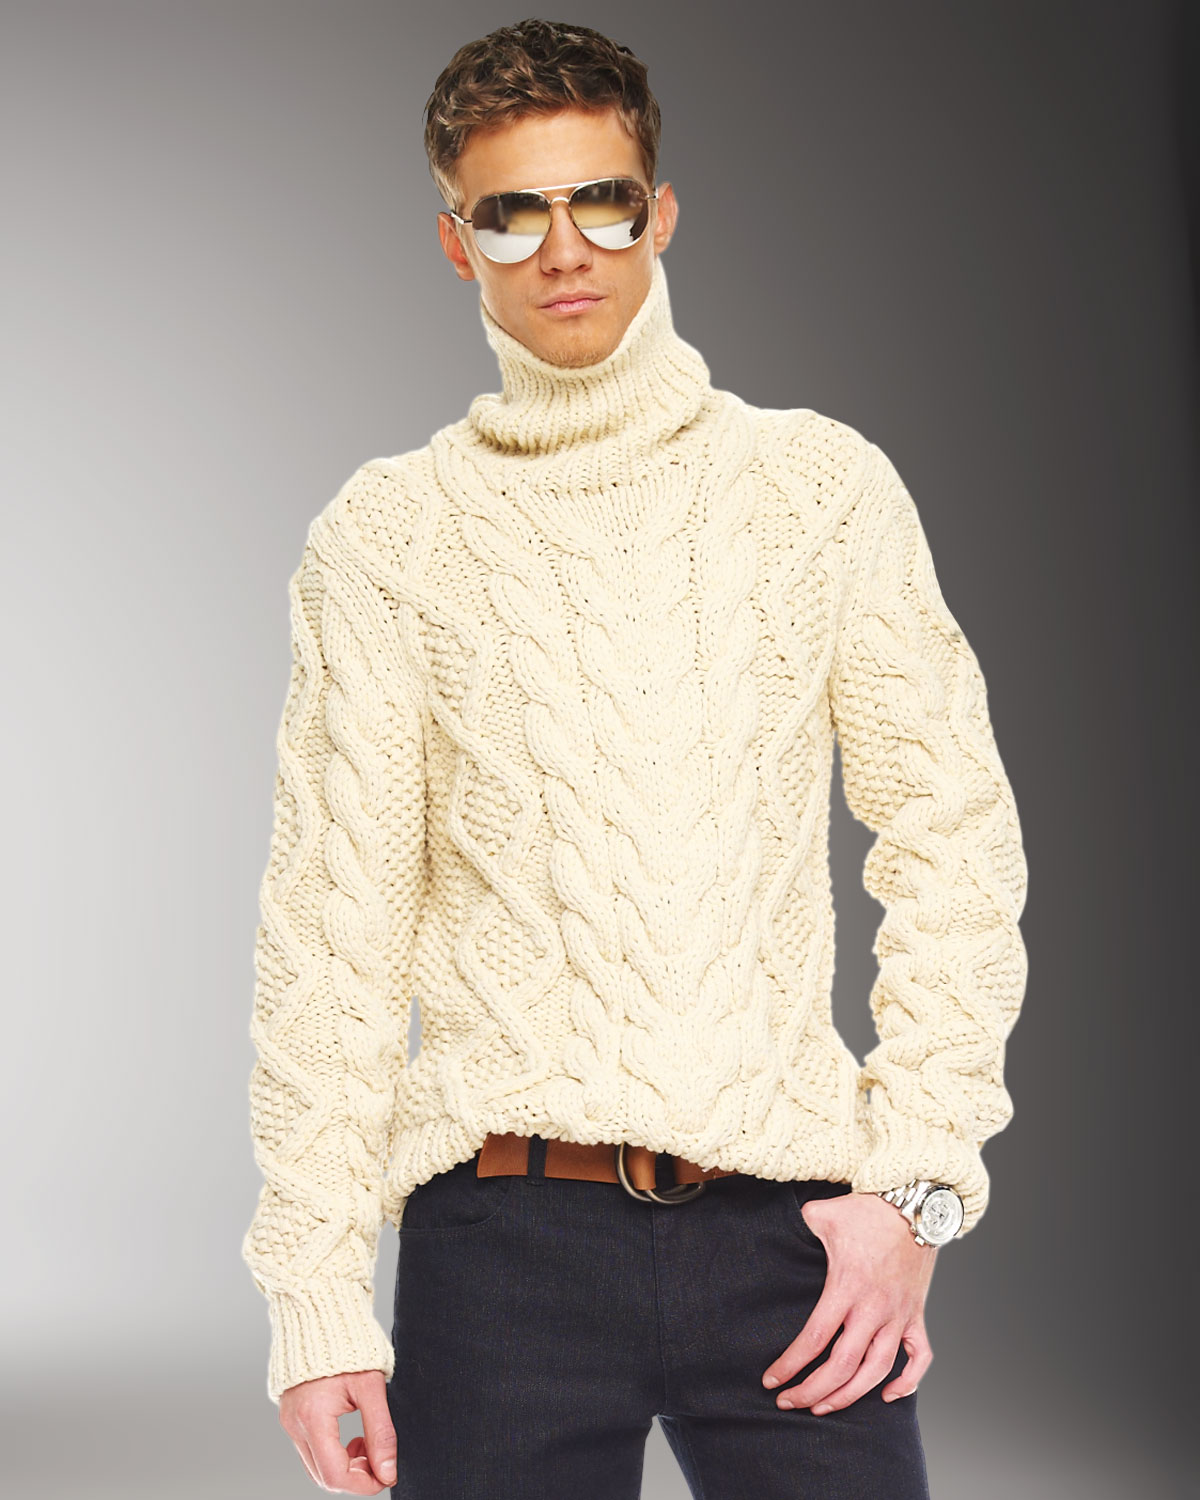 Lyst Michael Kors Handknit Cable Sweater In Natural For Men